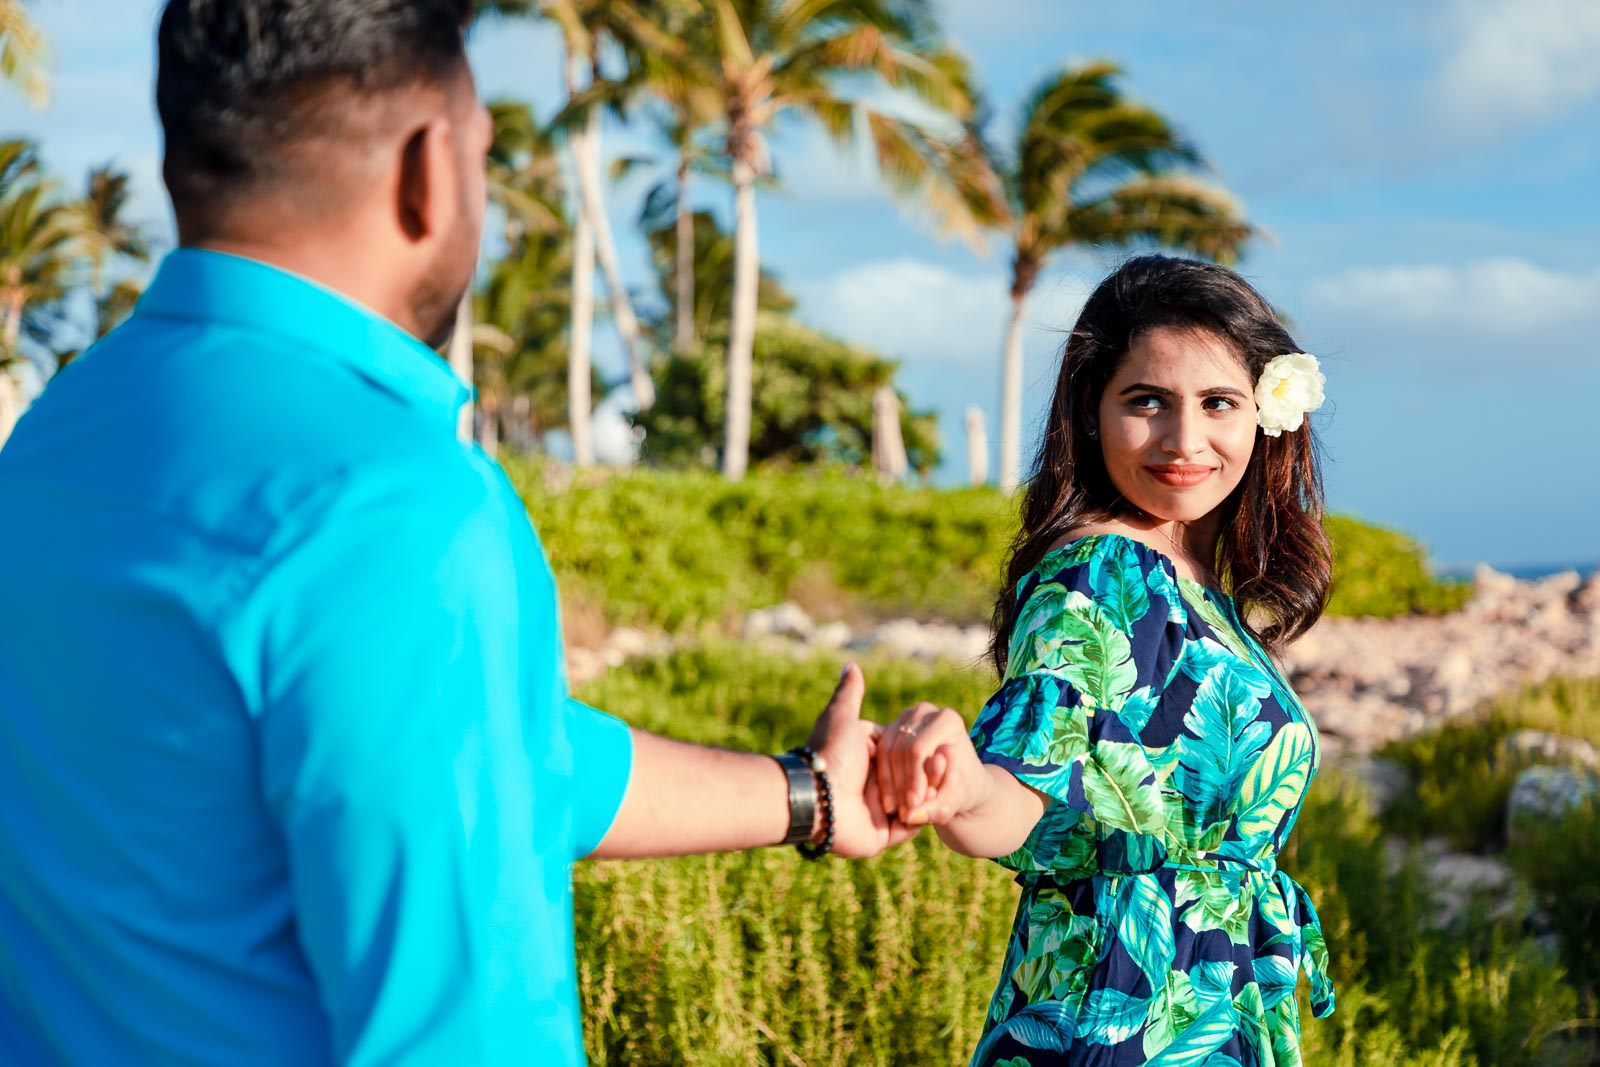 couples engagement surprise proposal photography sunset beach palm trees oahu maui hawaii